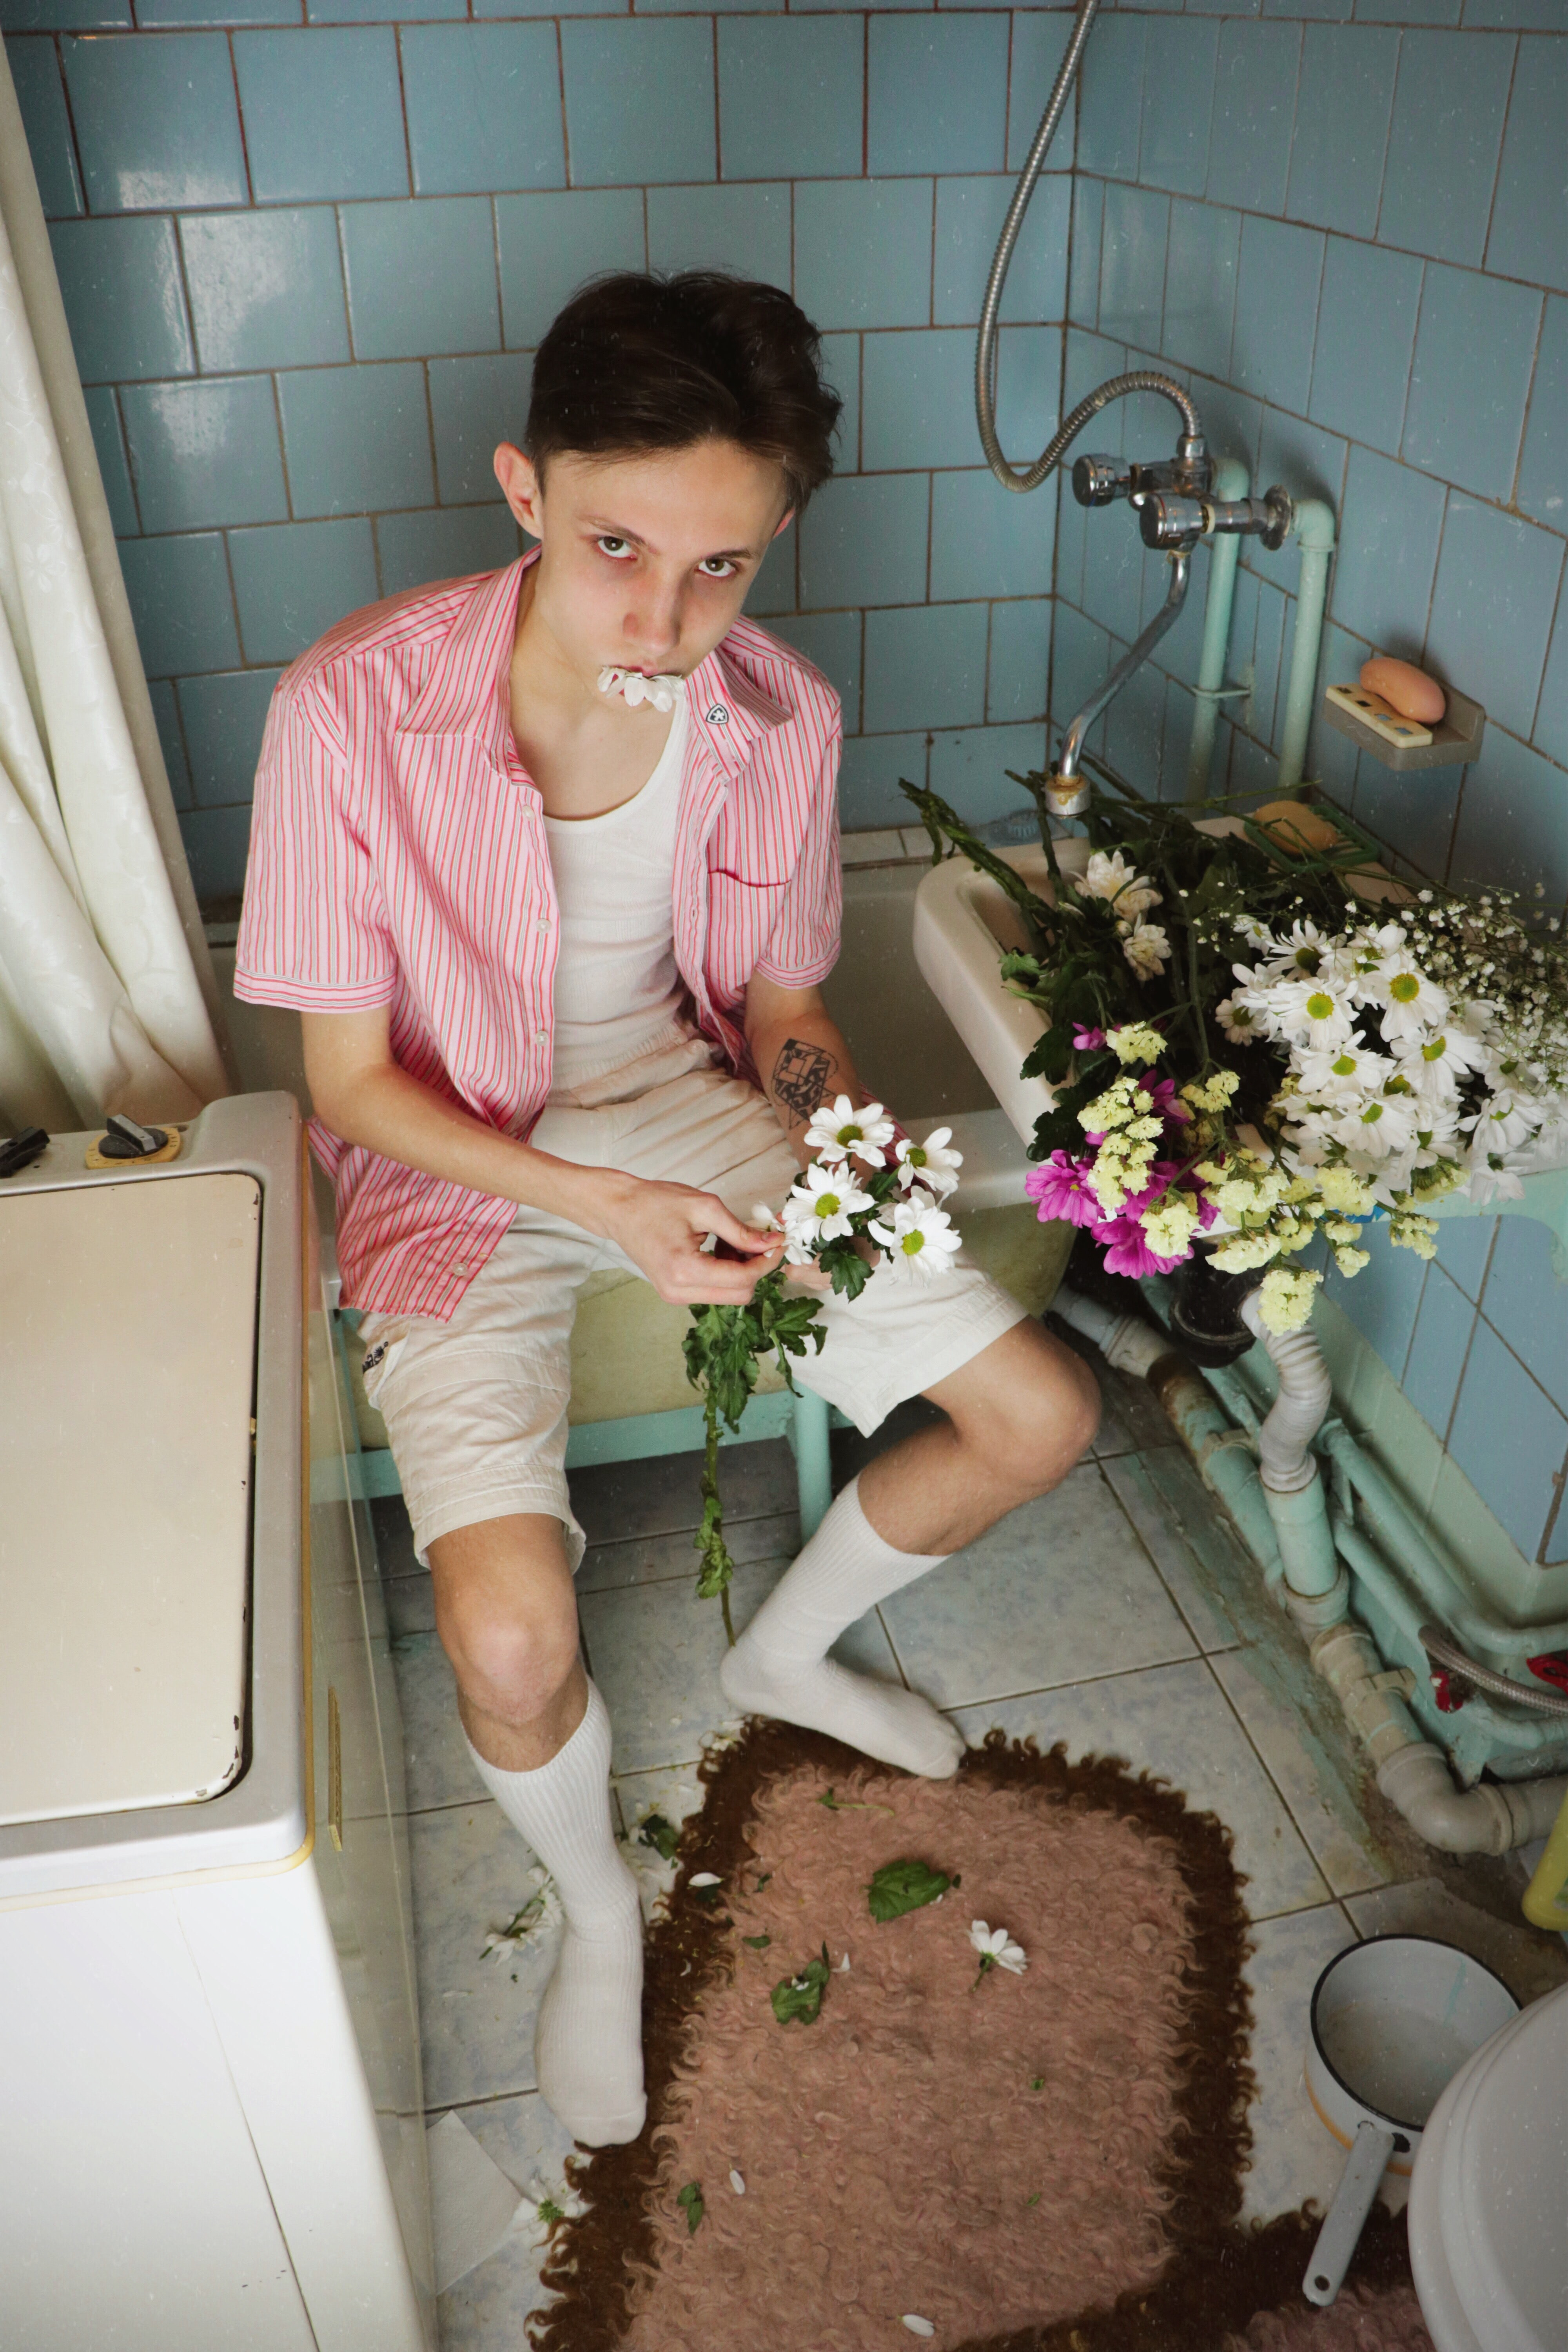 man sitting on bath tub holding white flower